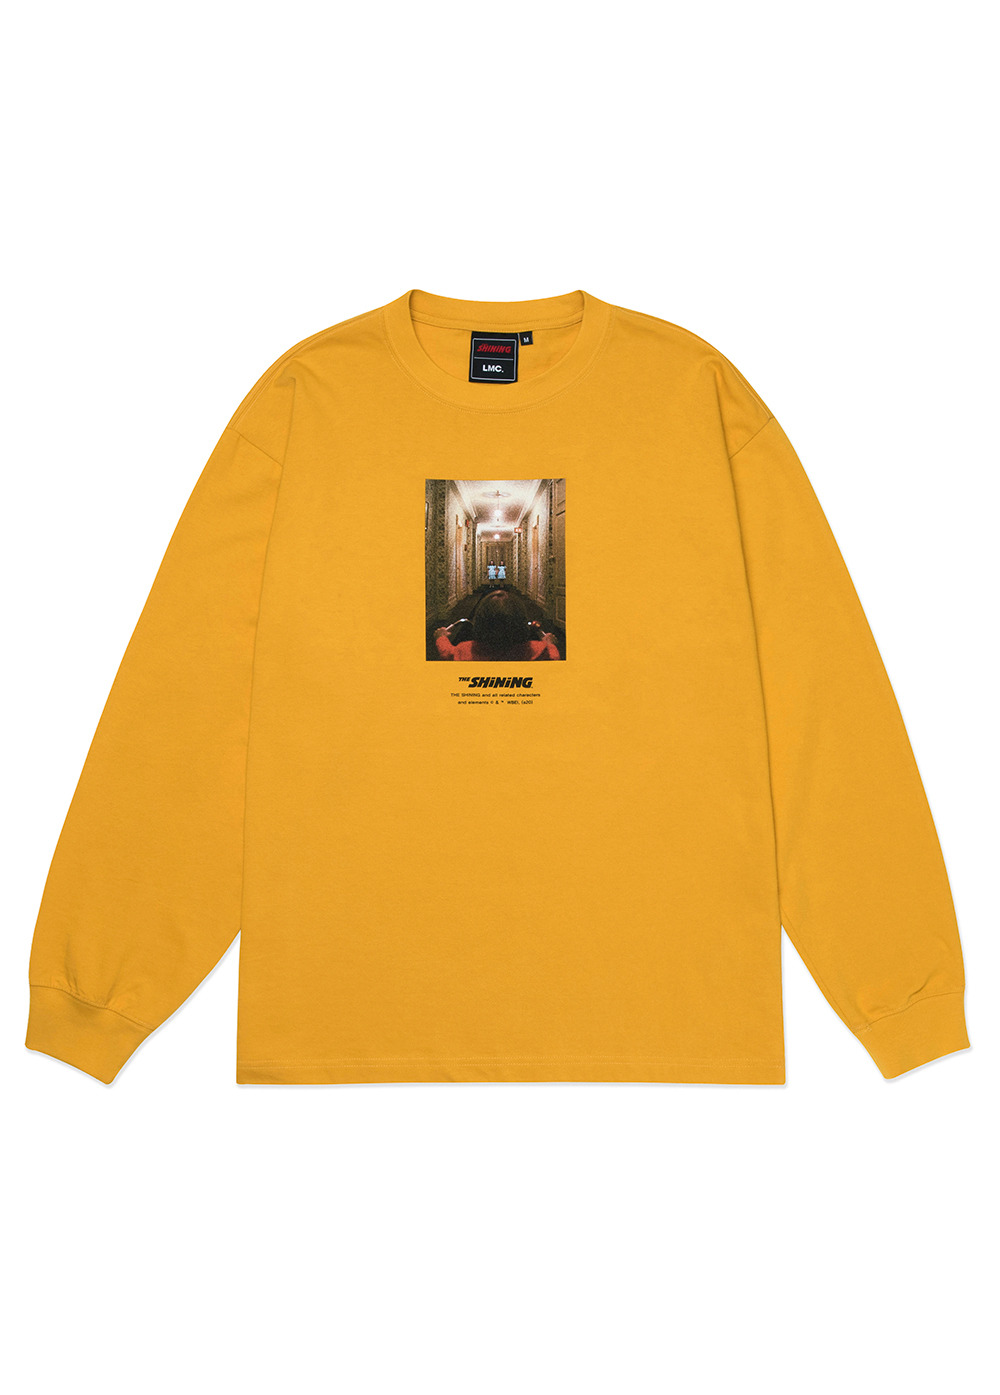 LMC│THE SHINING HALLWAY PHOTO LONG SLV TEE mustard